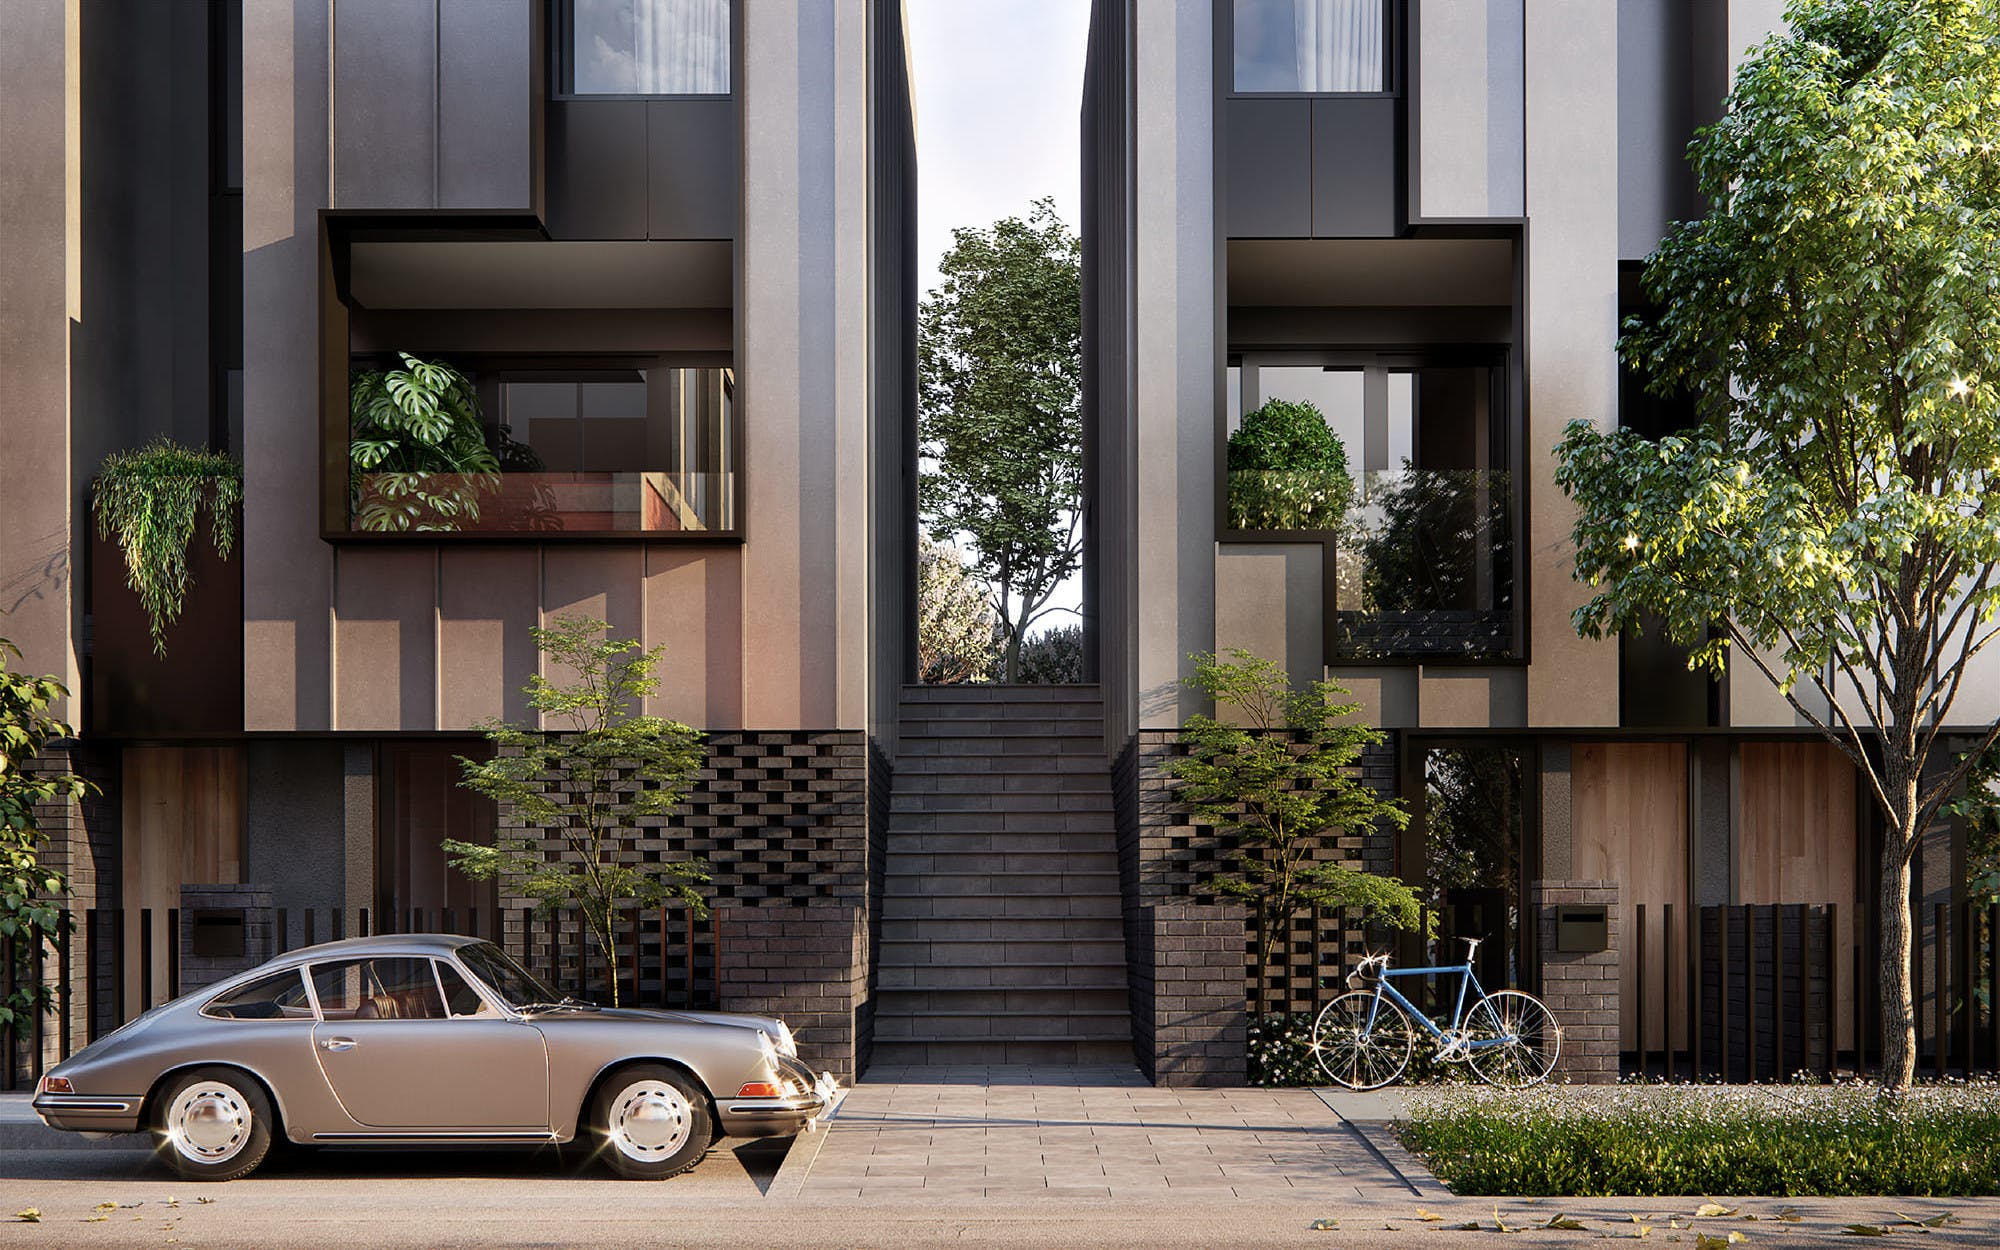 The Mills | YarraBend: Off the Plan Townhouses, Apartments & Property Melbourne